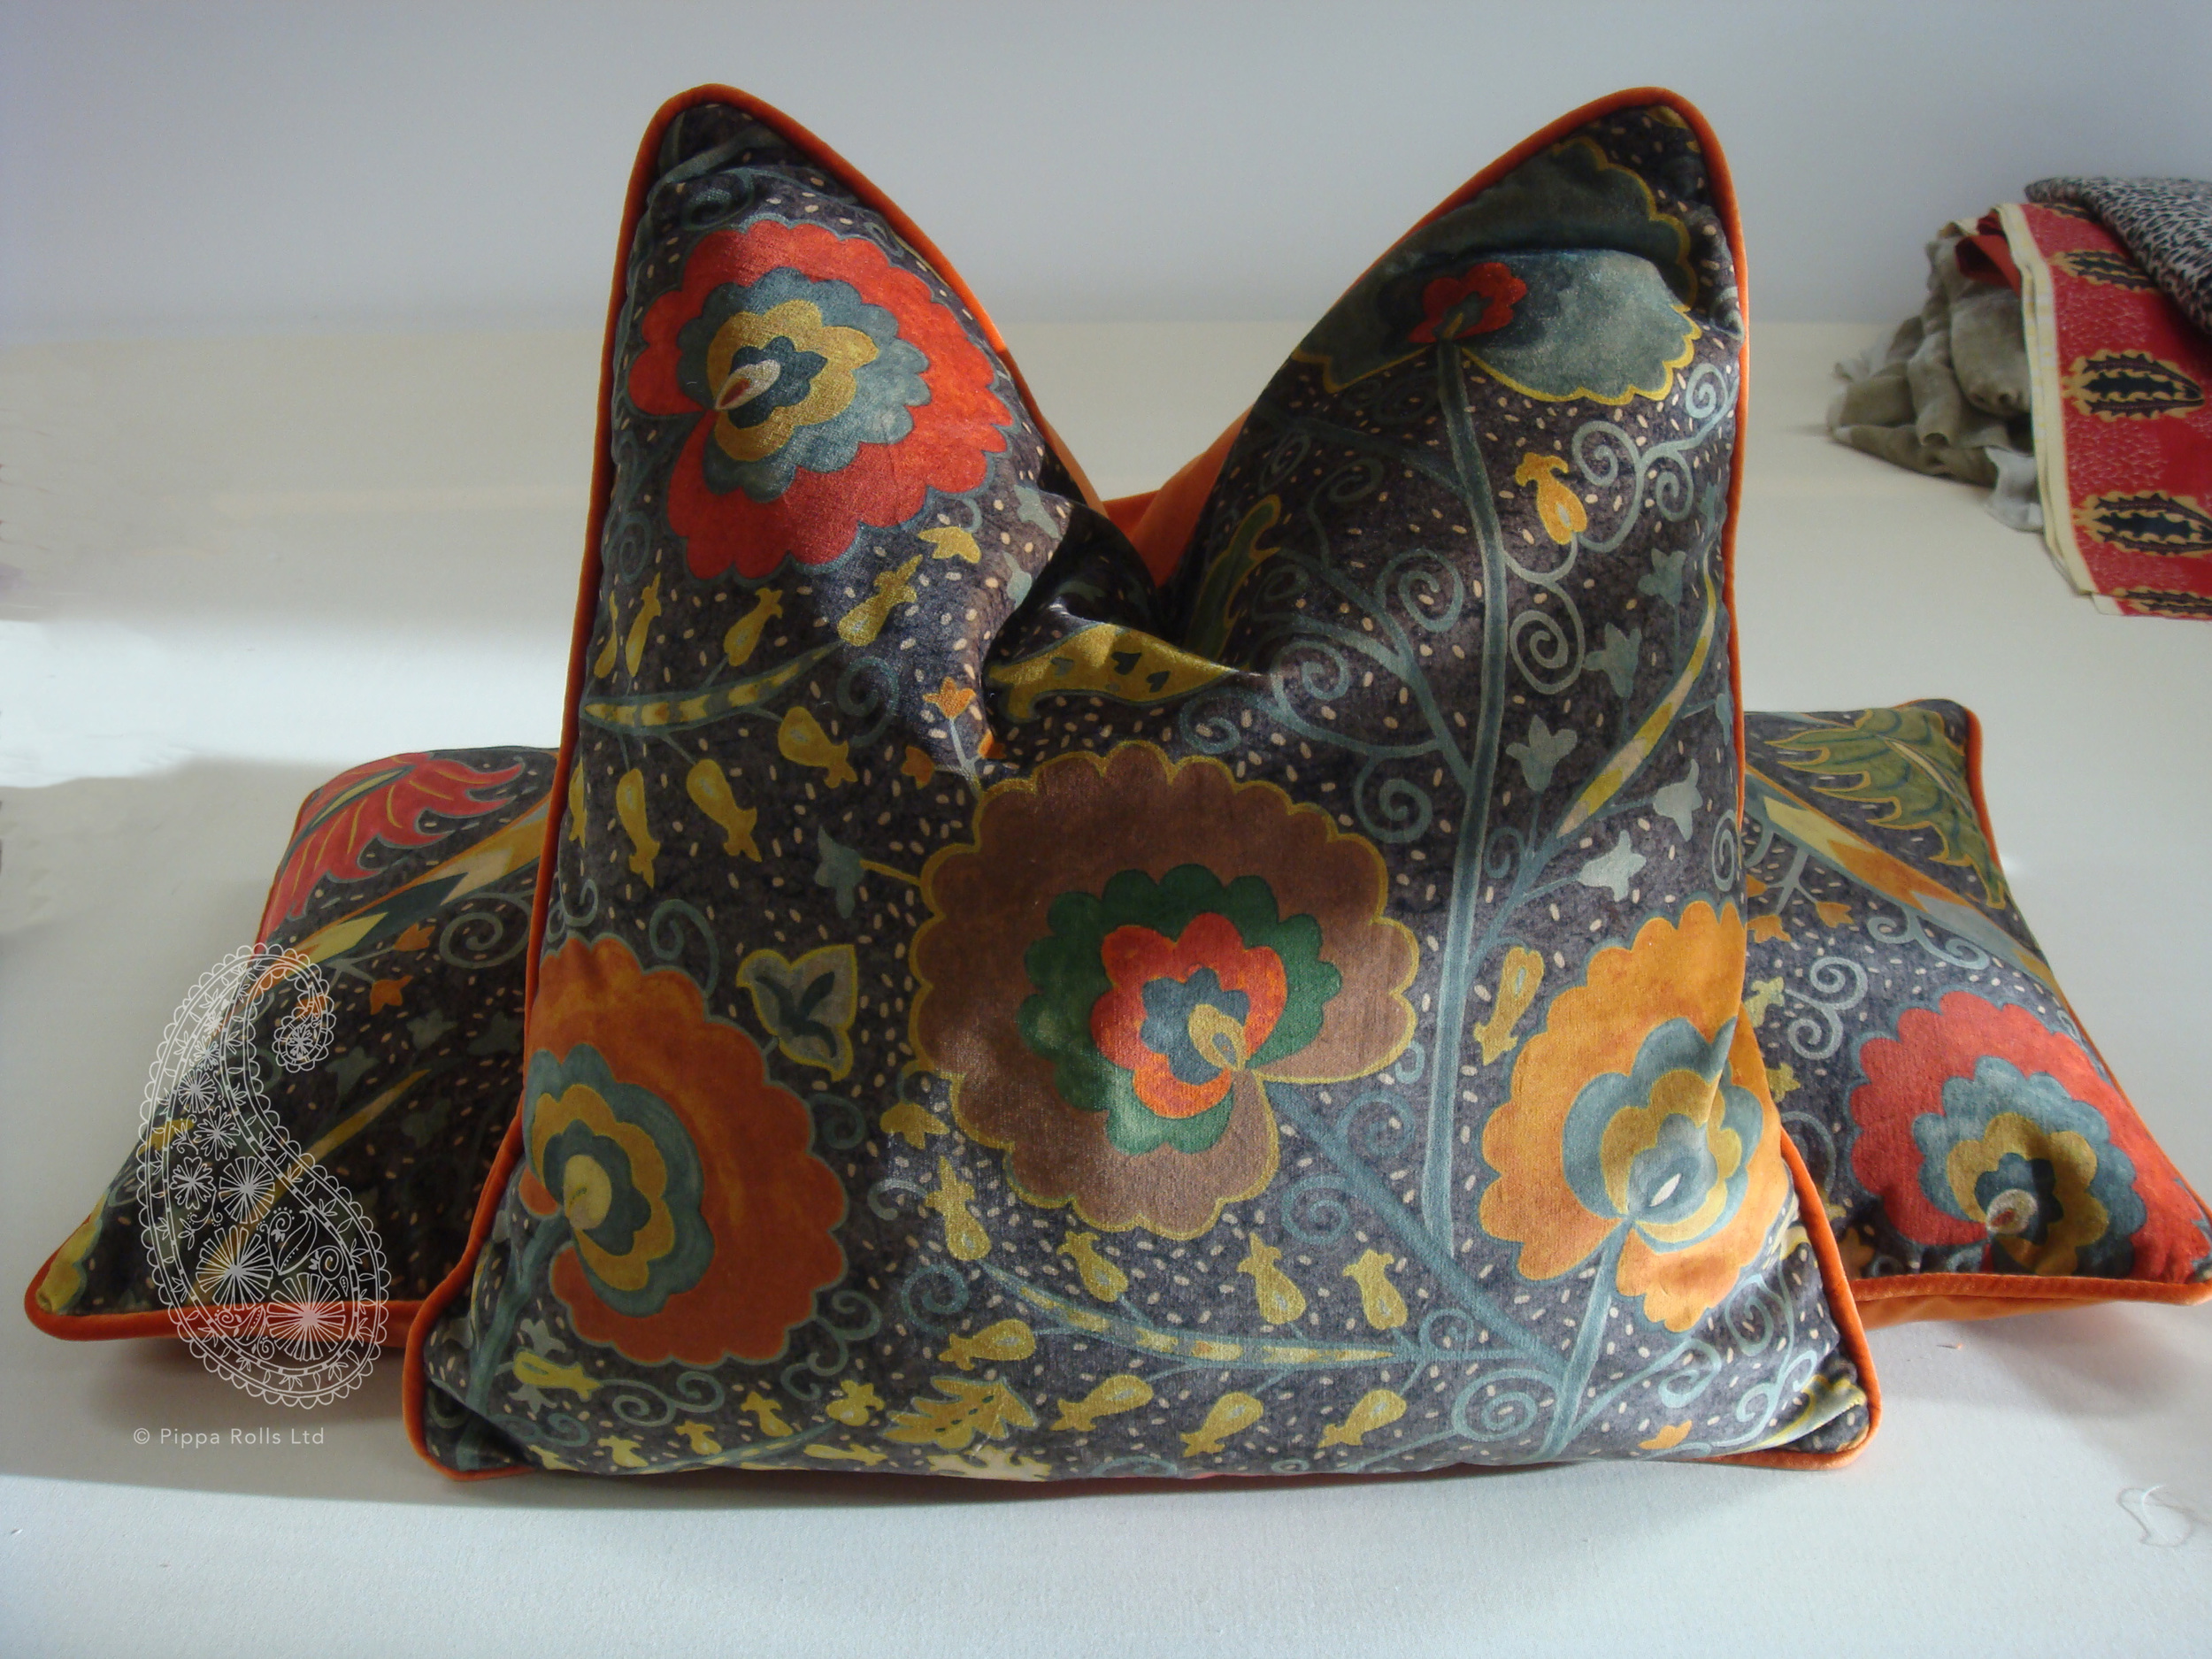 lewis and wood cushion by Pippa Rolls Limited jpeg.jpg